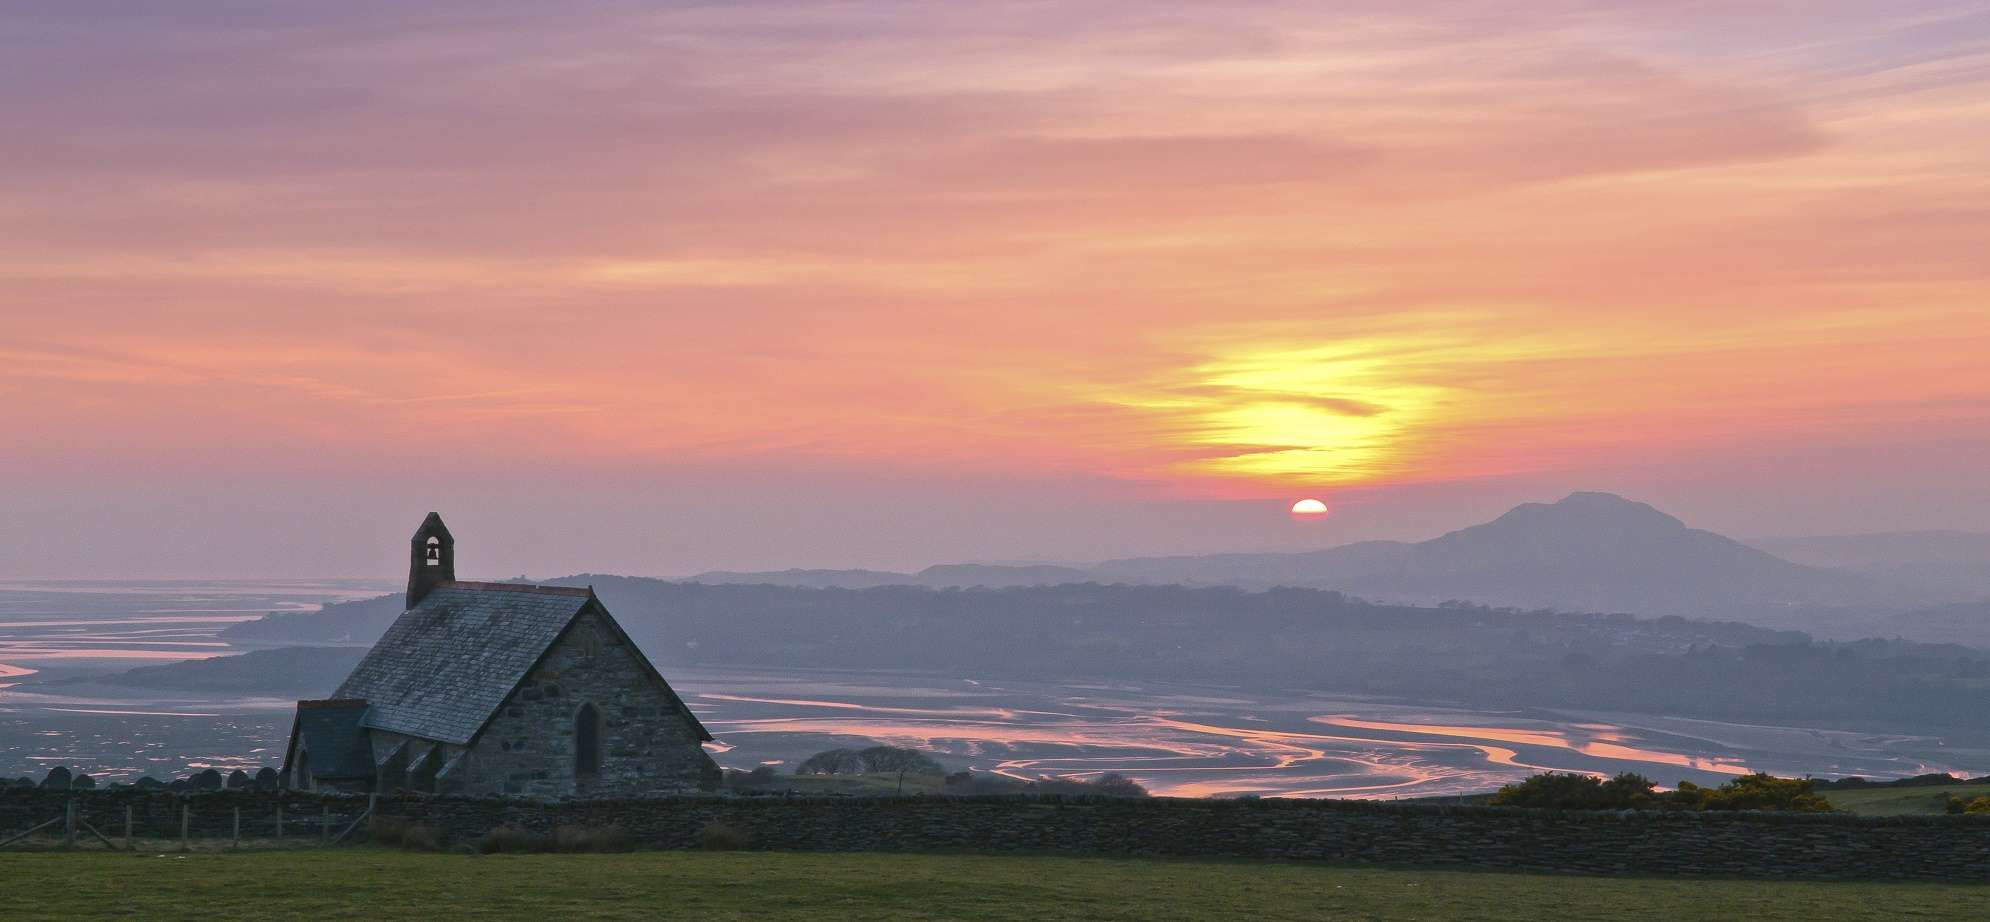 Llandecwyn church and Dwyryd estuary at sunset